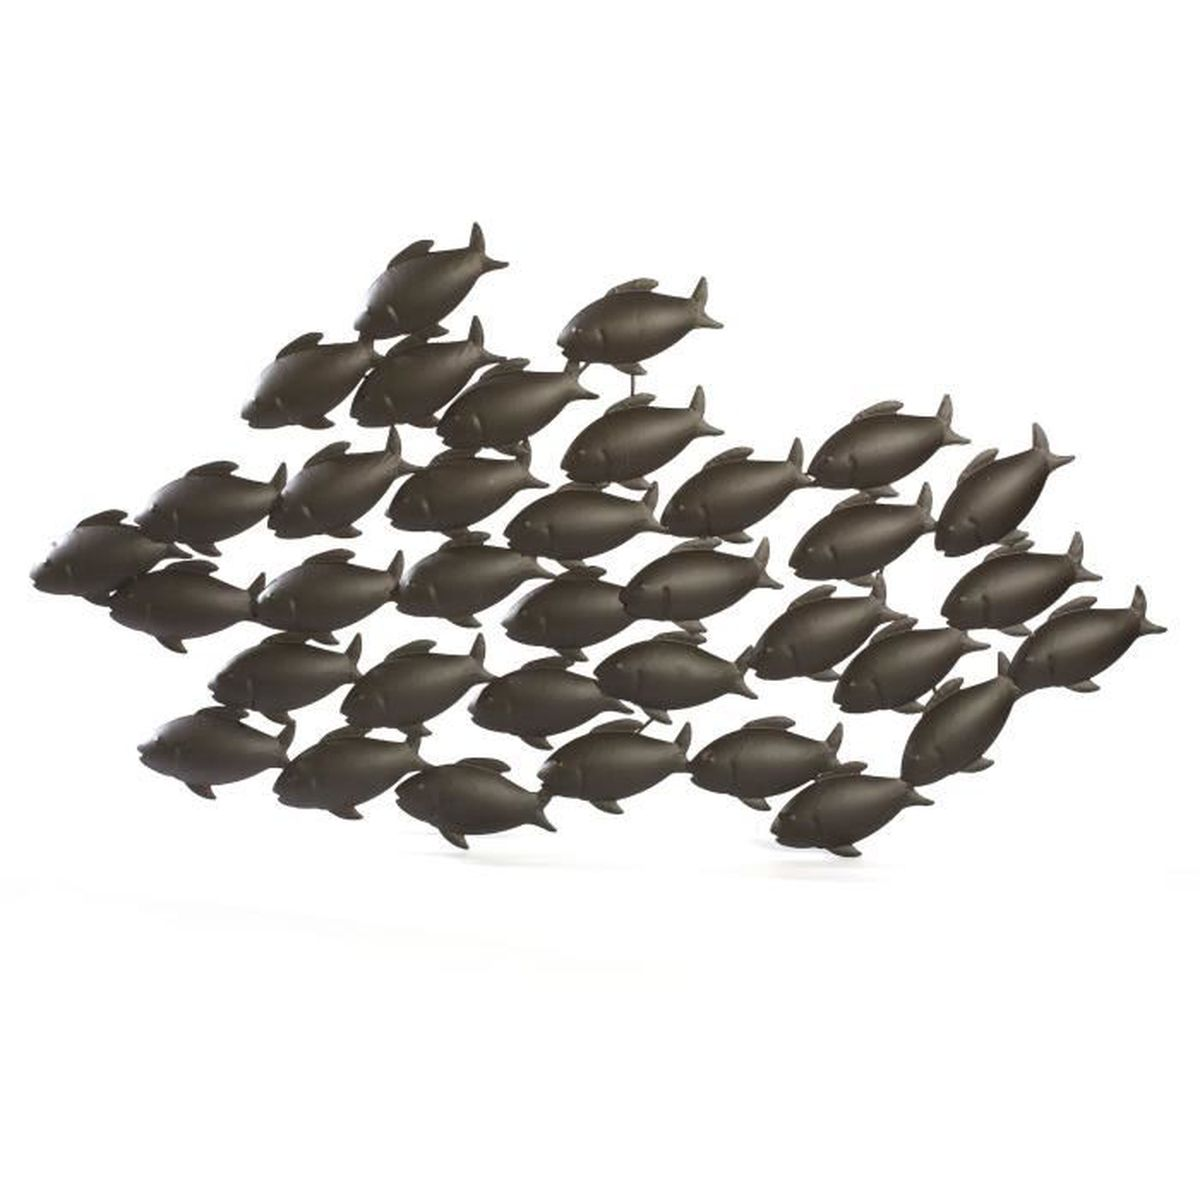 Sea d coration murale poissons en m tal achat vente for Decoration murale metal alinea